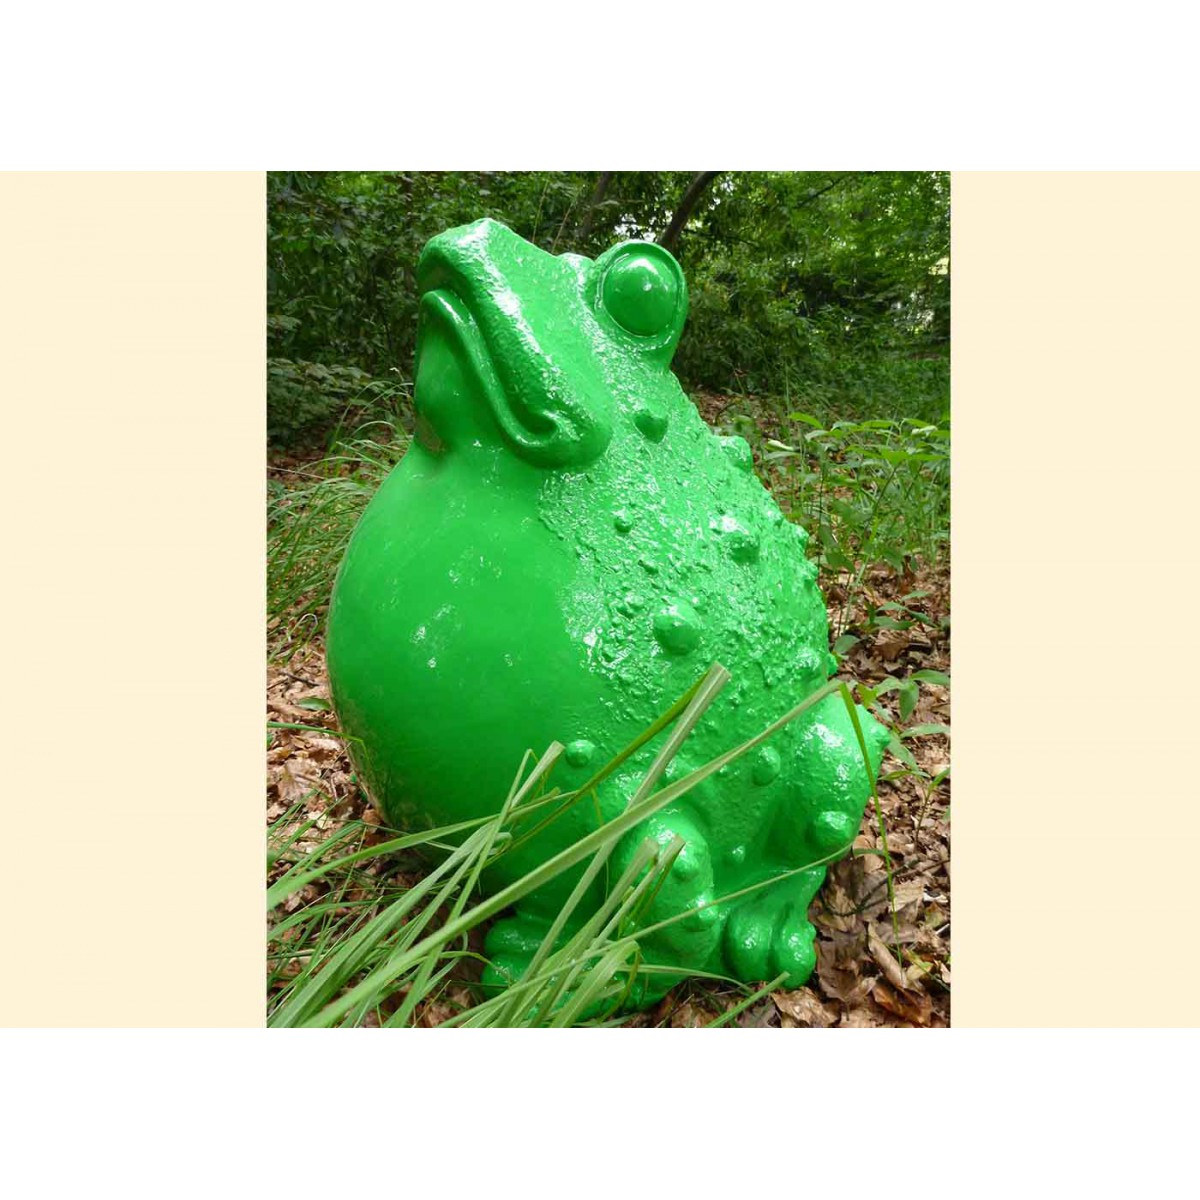 Crapaud ou grenouille d co en r sine pour jardin sign for Decoration jardin grenouille